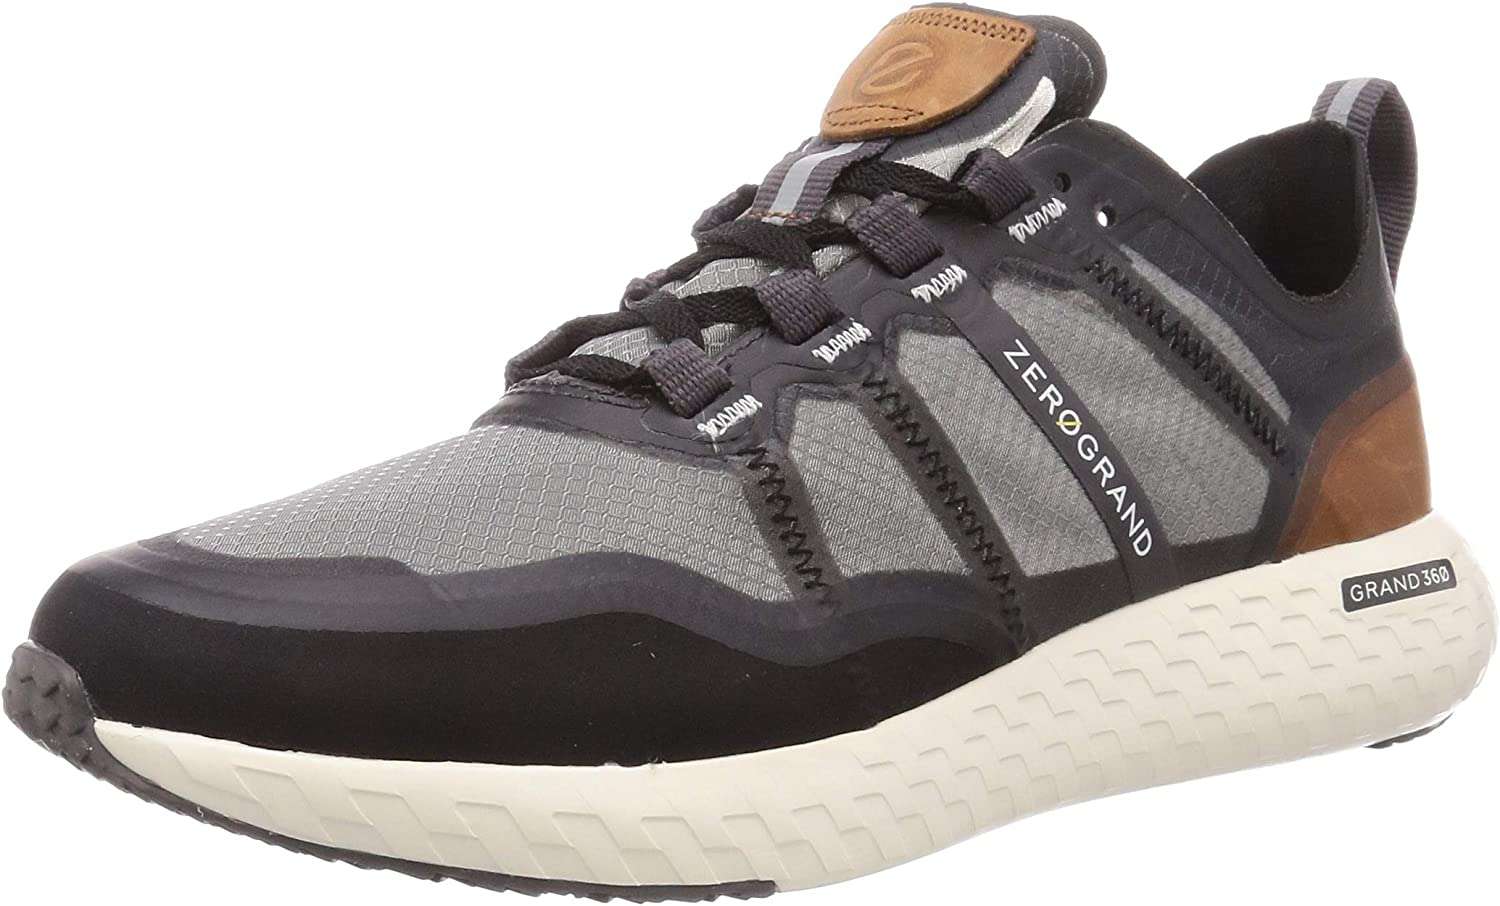 Cole Haan Men's Zerogrand Safety and trust Outpace Running Max 74% OFF Runner Shoe Road